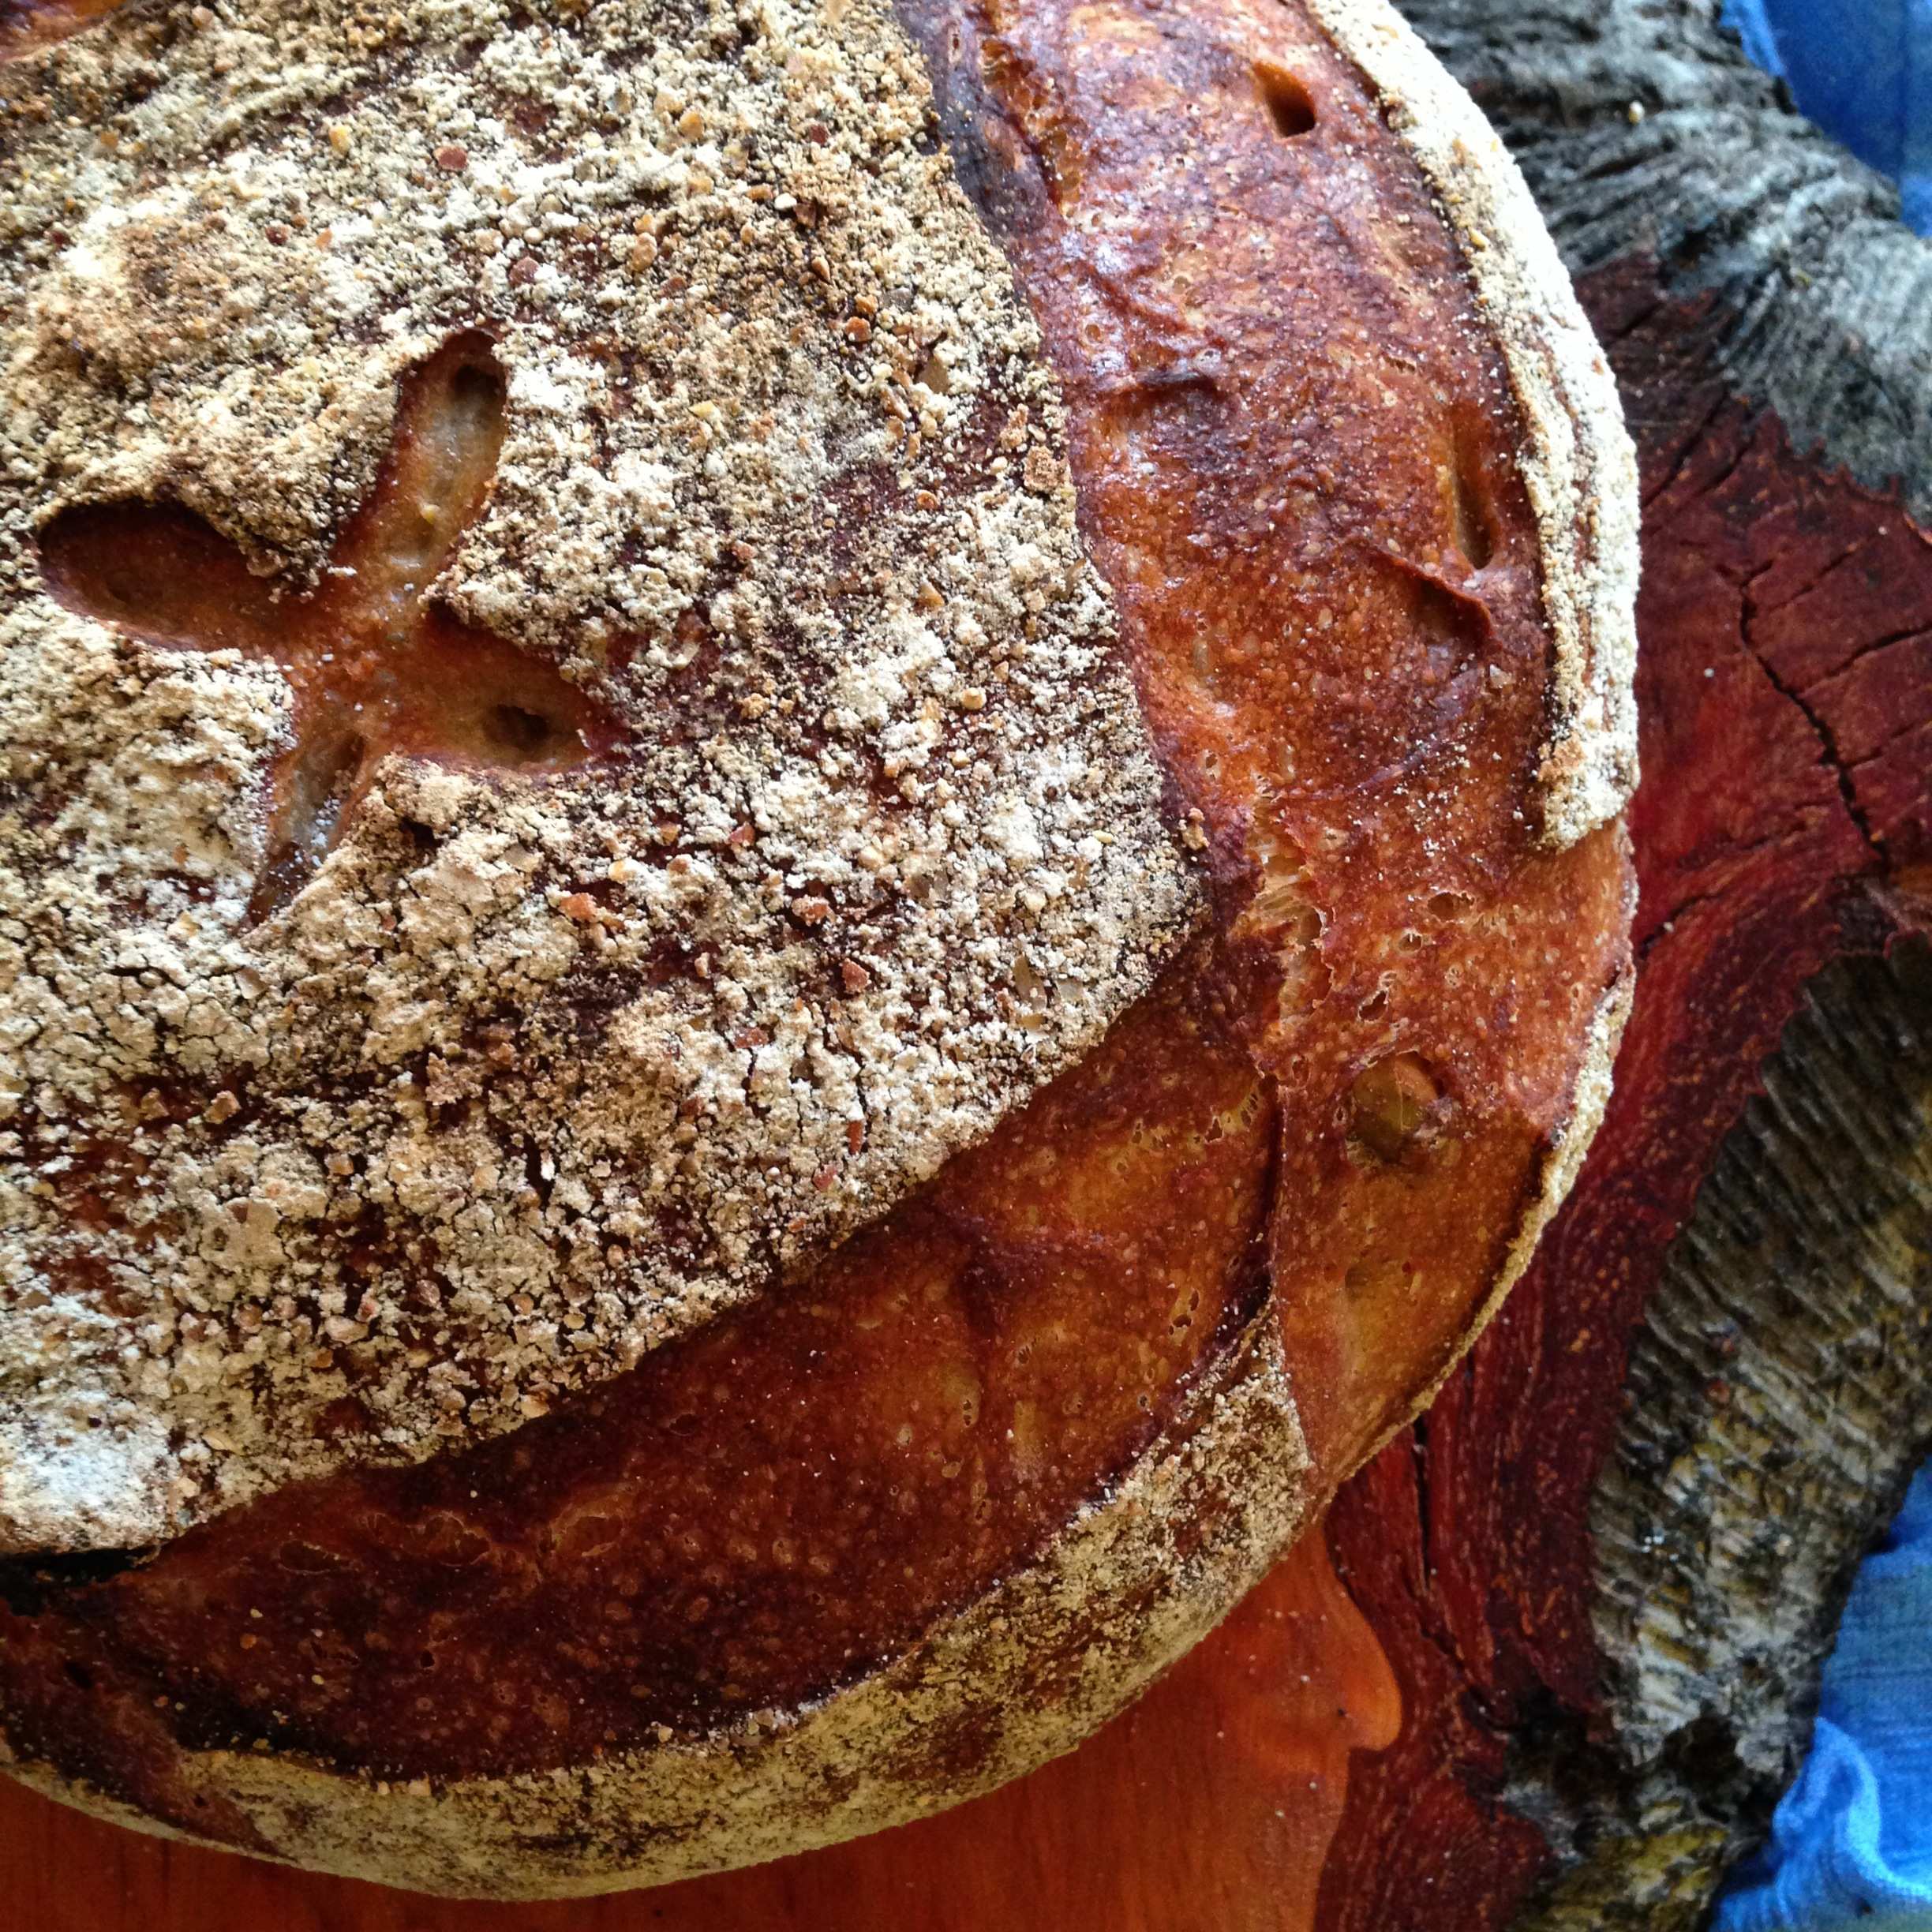 A loaf of Khorasan Apricot Levain on the beautifulwood of the Alder tree.